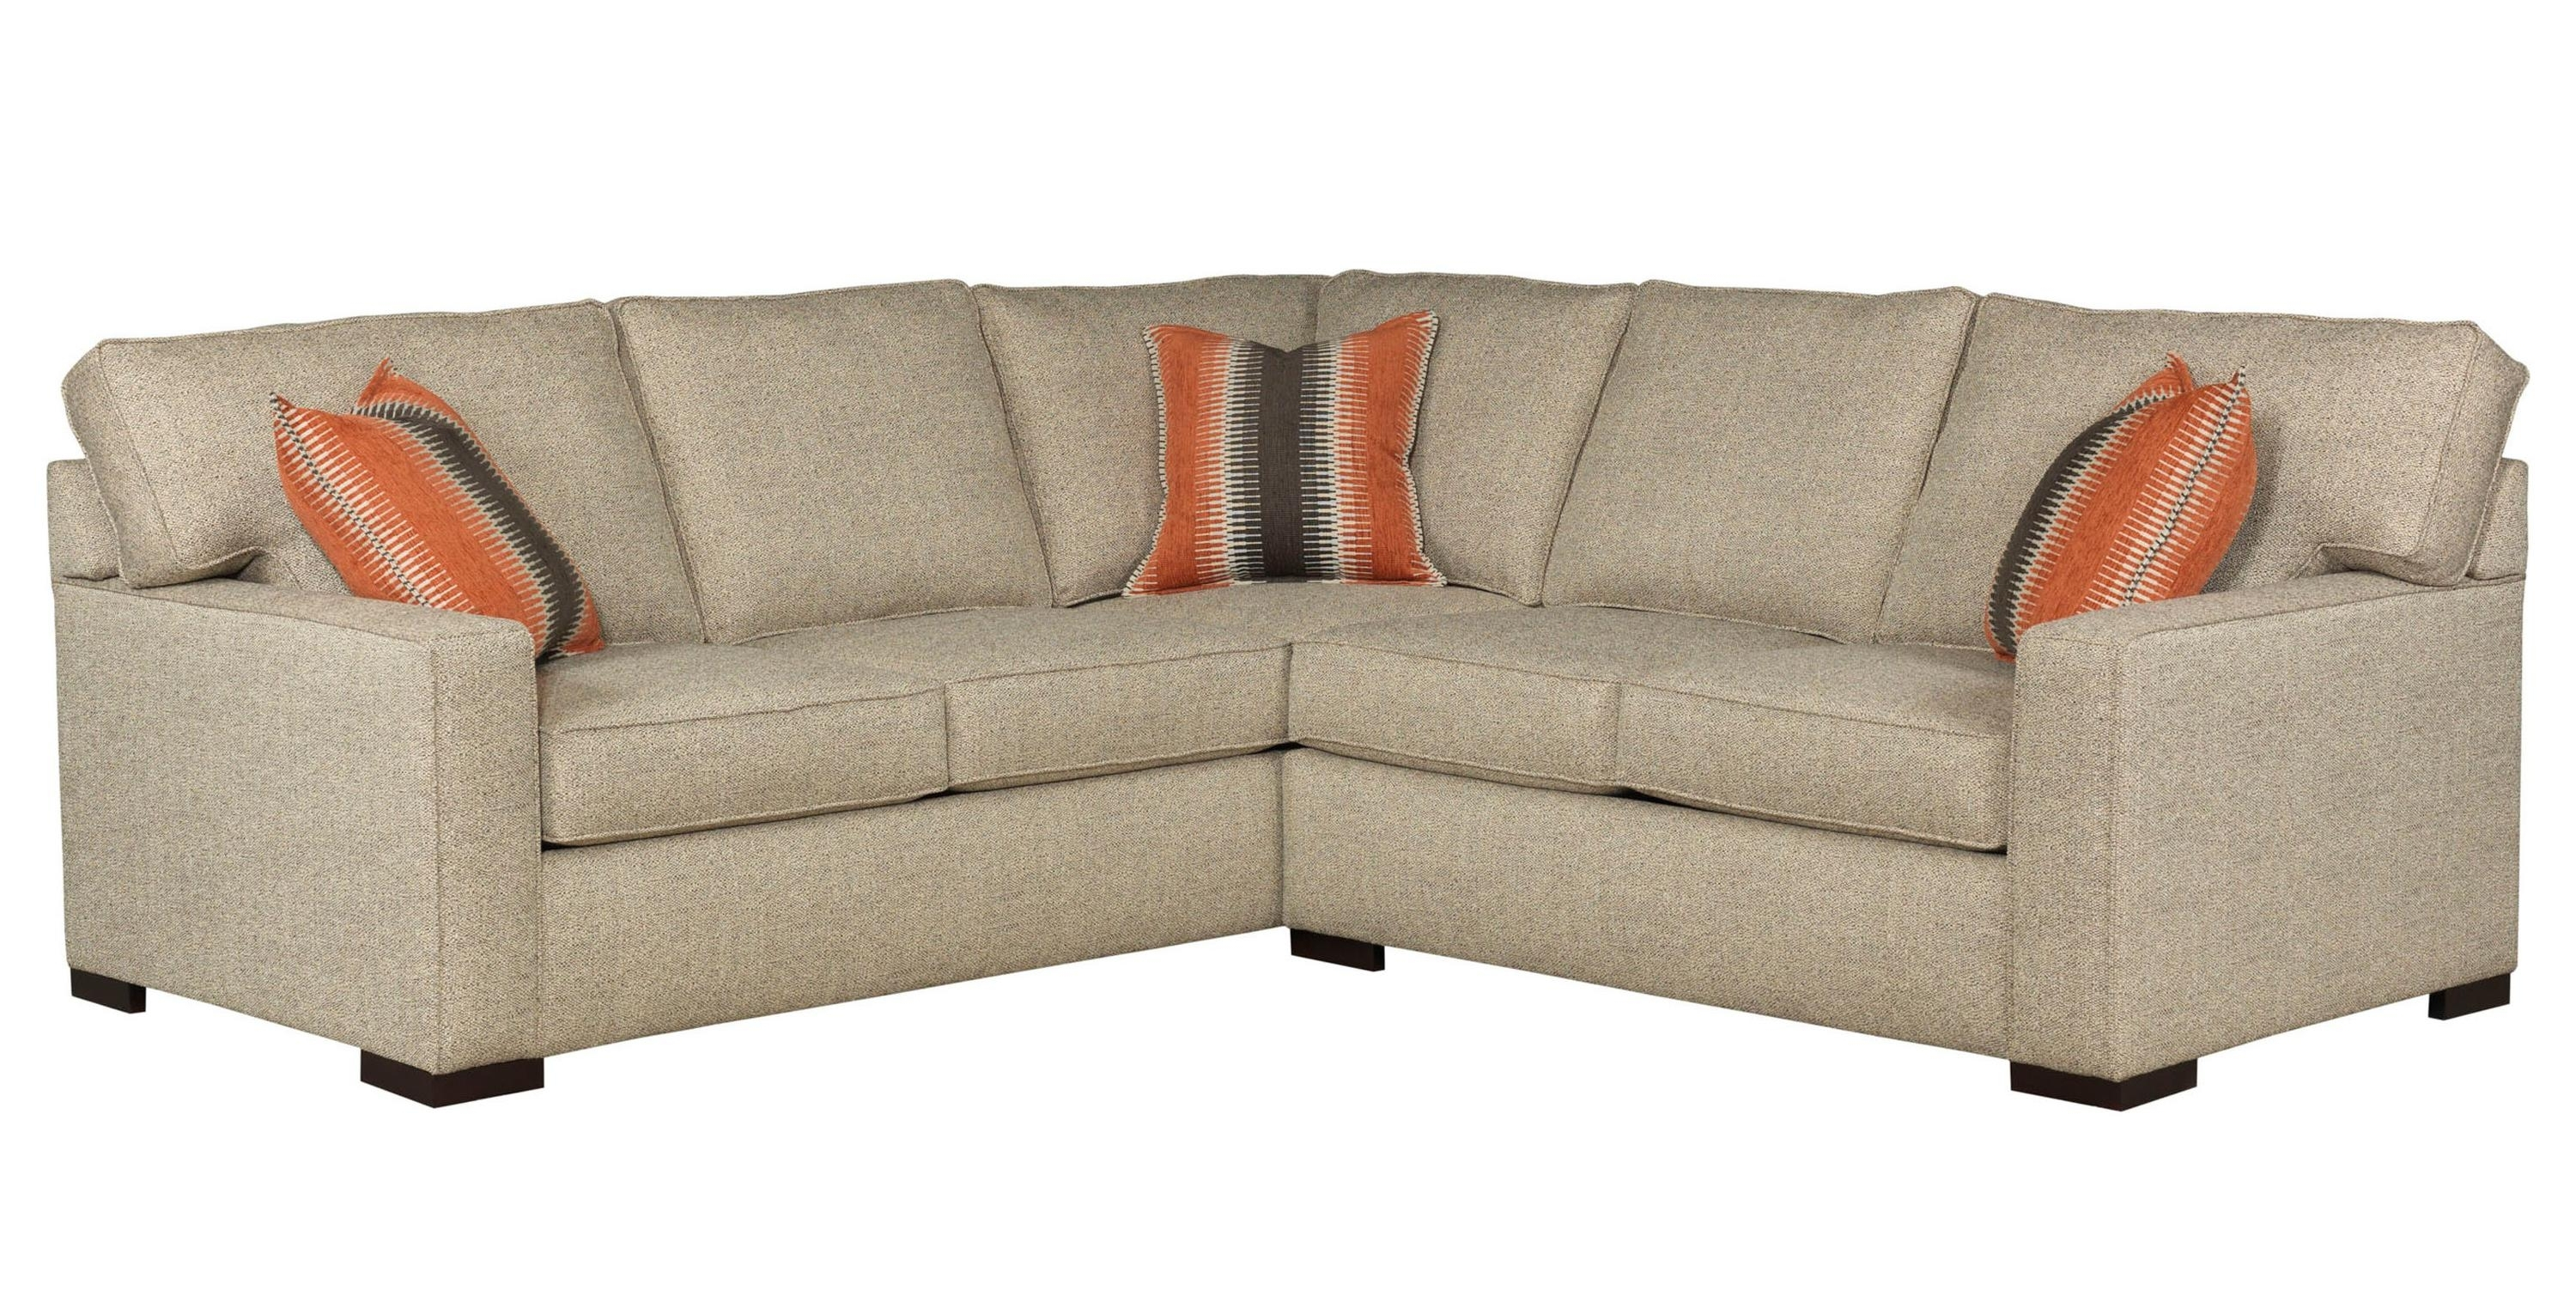 Raphael Two Piece Sectional Sofabroyhill Furniture – 8X8 With Current Sectional Sofas At Broyhill (View 12 of 20)